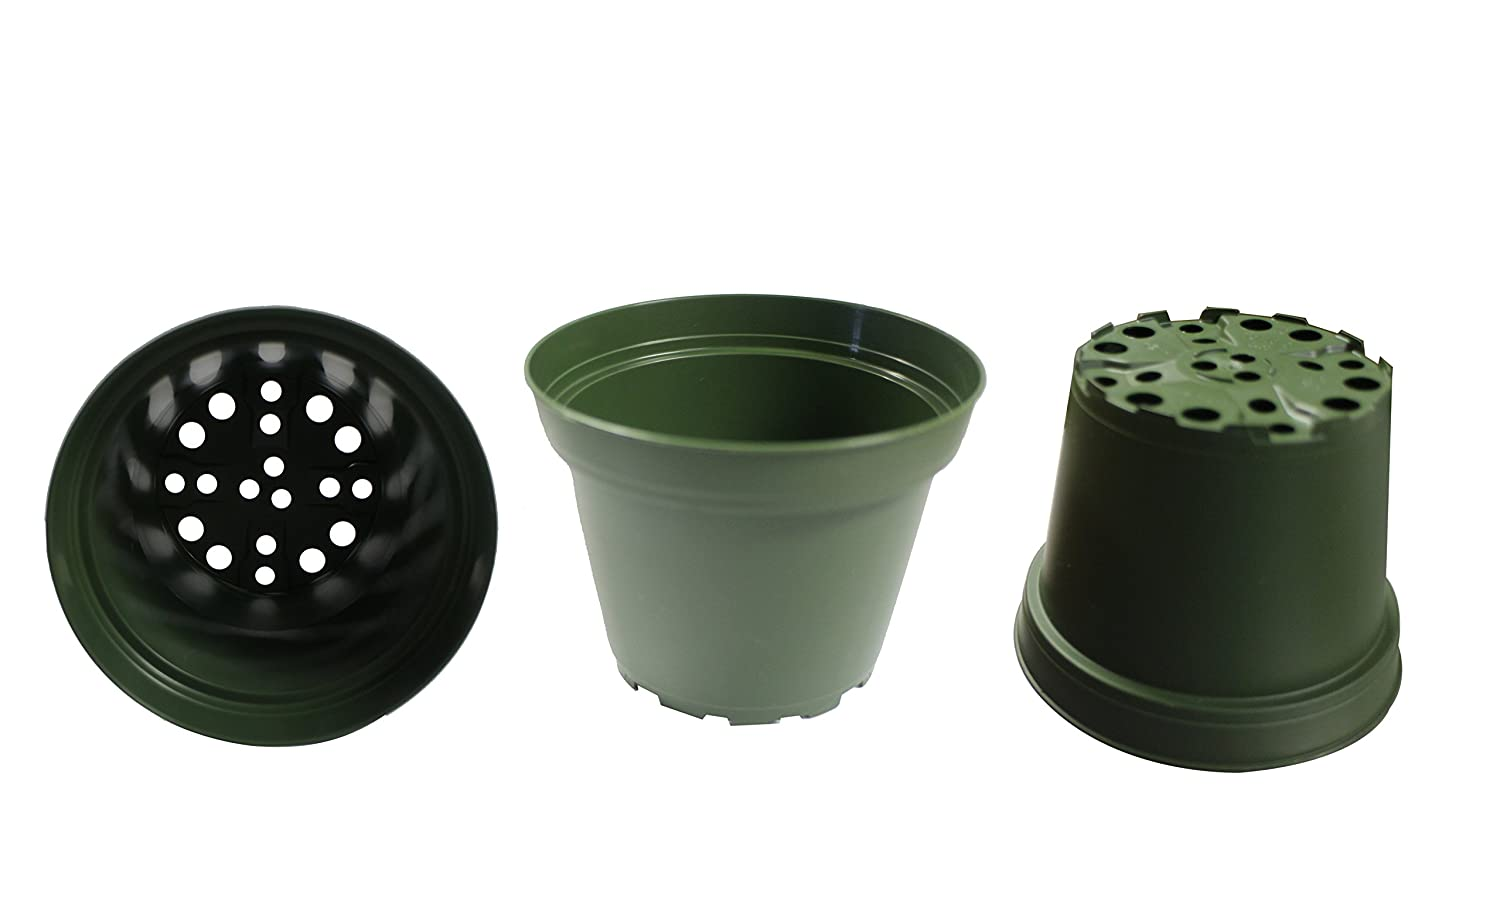 Amazon plastic pots for plants cuttings seedlings 4 inch amazon plastic pots for plants cuttings seedlings 4 inch 100 pack color terracotta garden outdoor workwithnaturefo